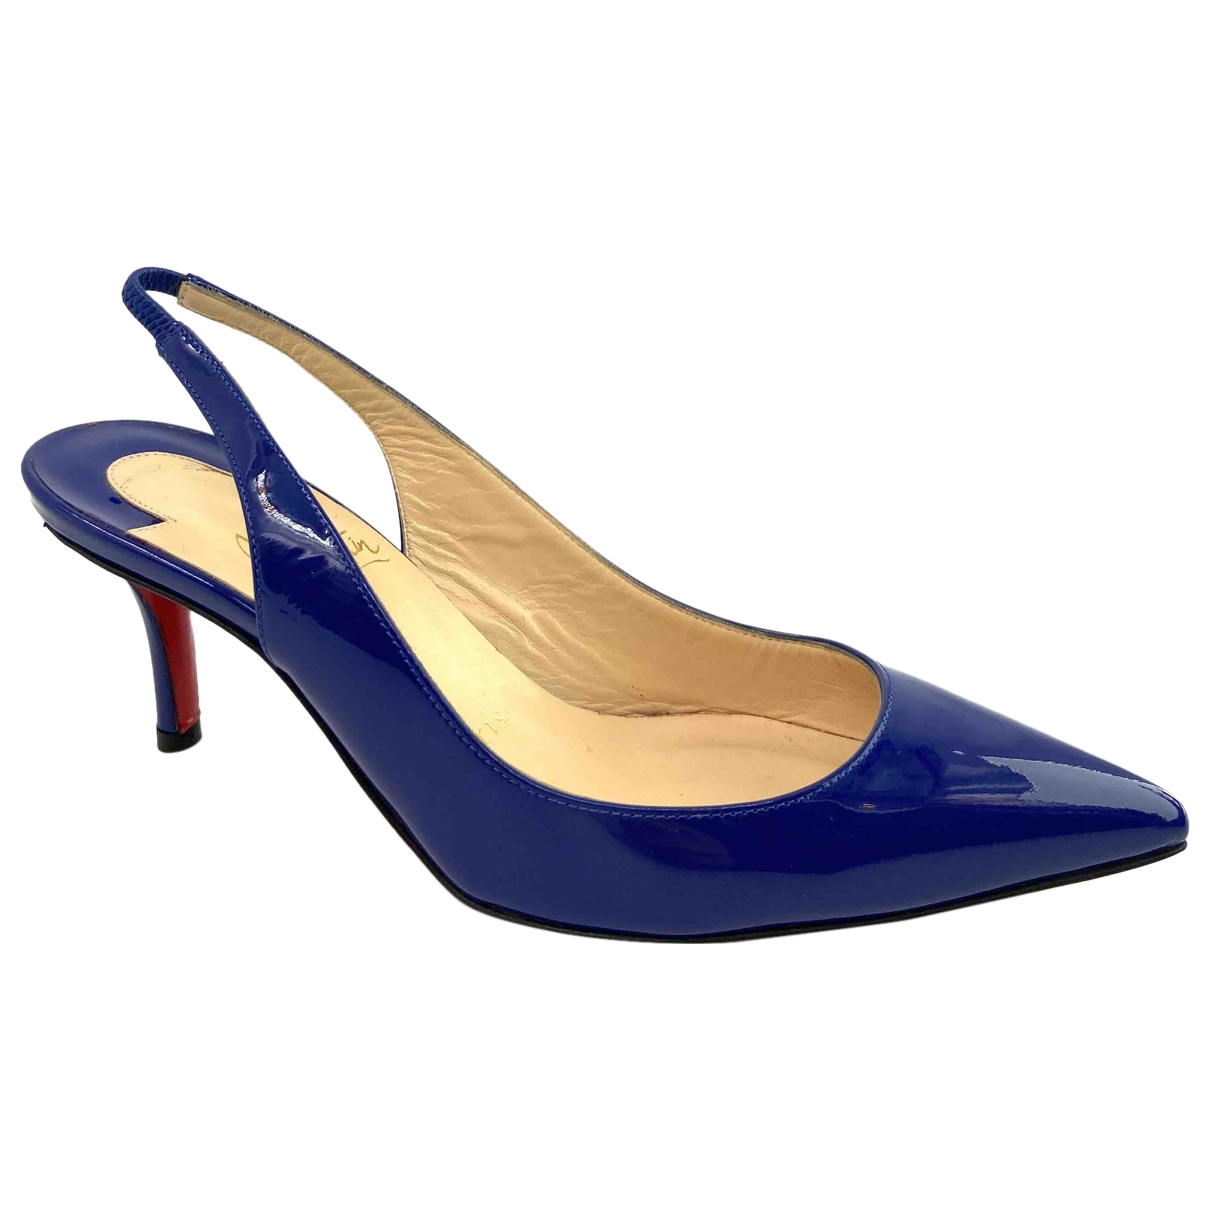 Christian Louboutin \N Pumps in  Blau Lackleder